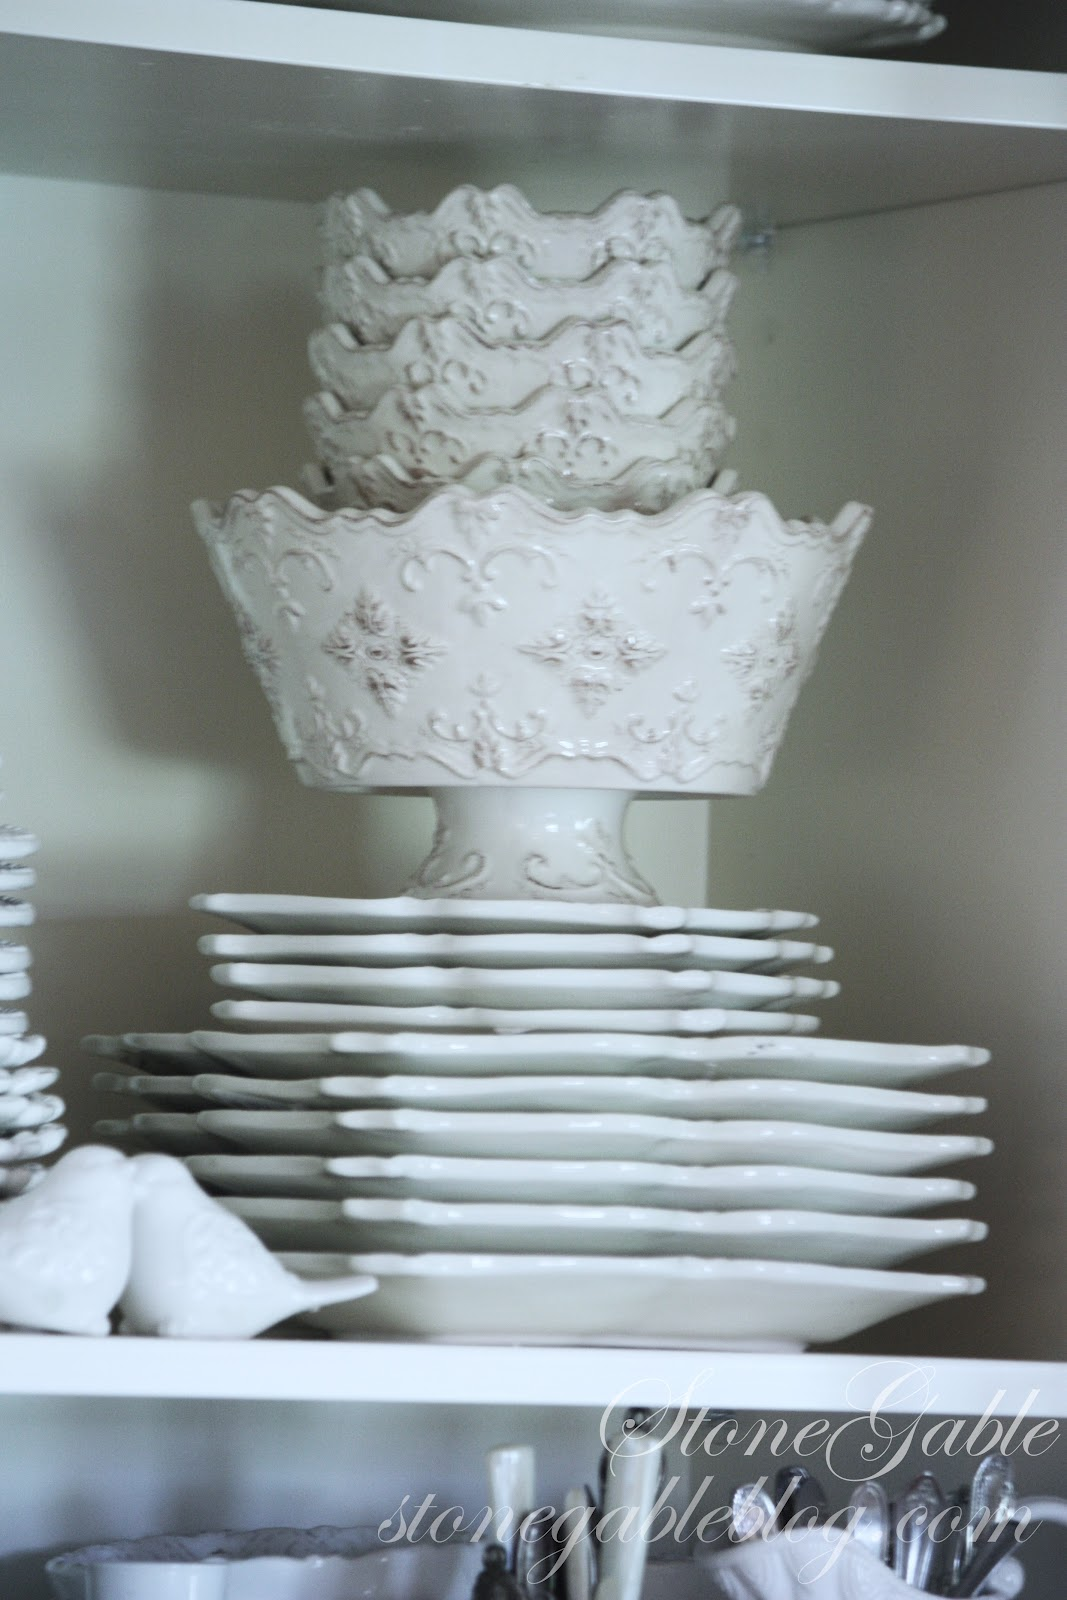 White Dishes In The Little Cupboard Stonegable